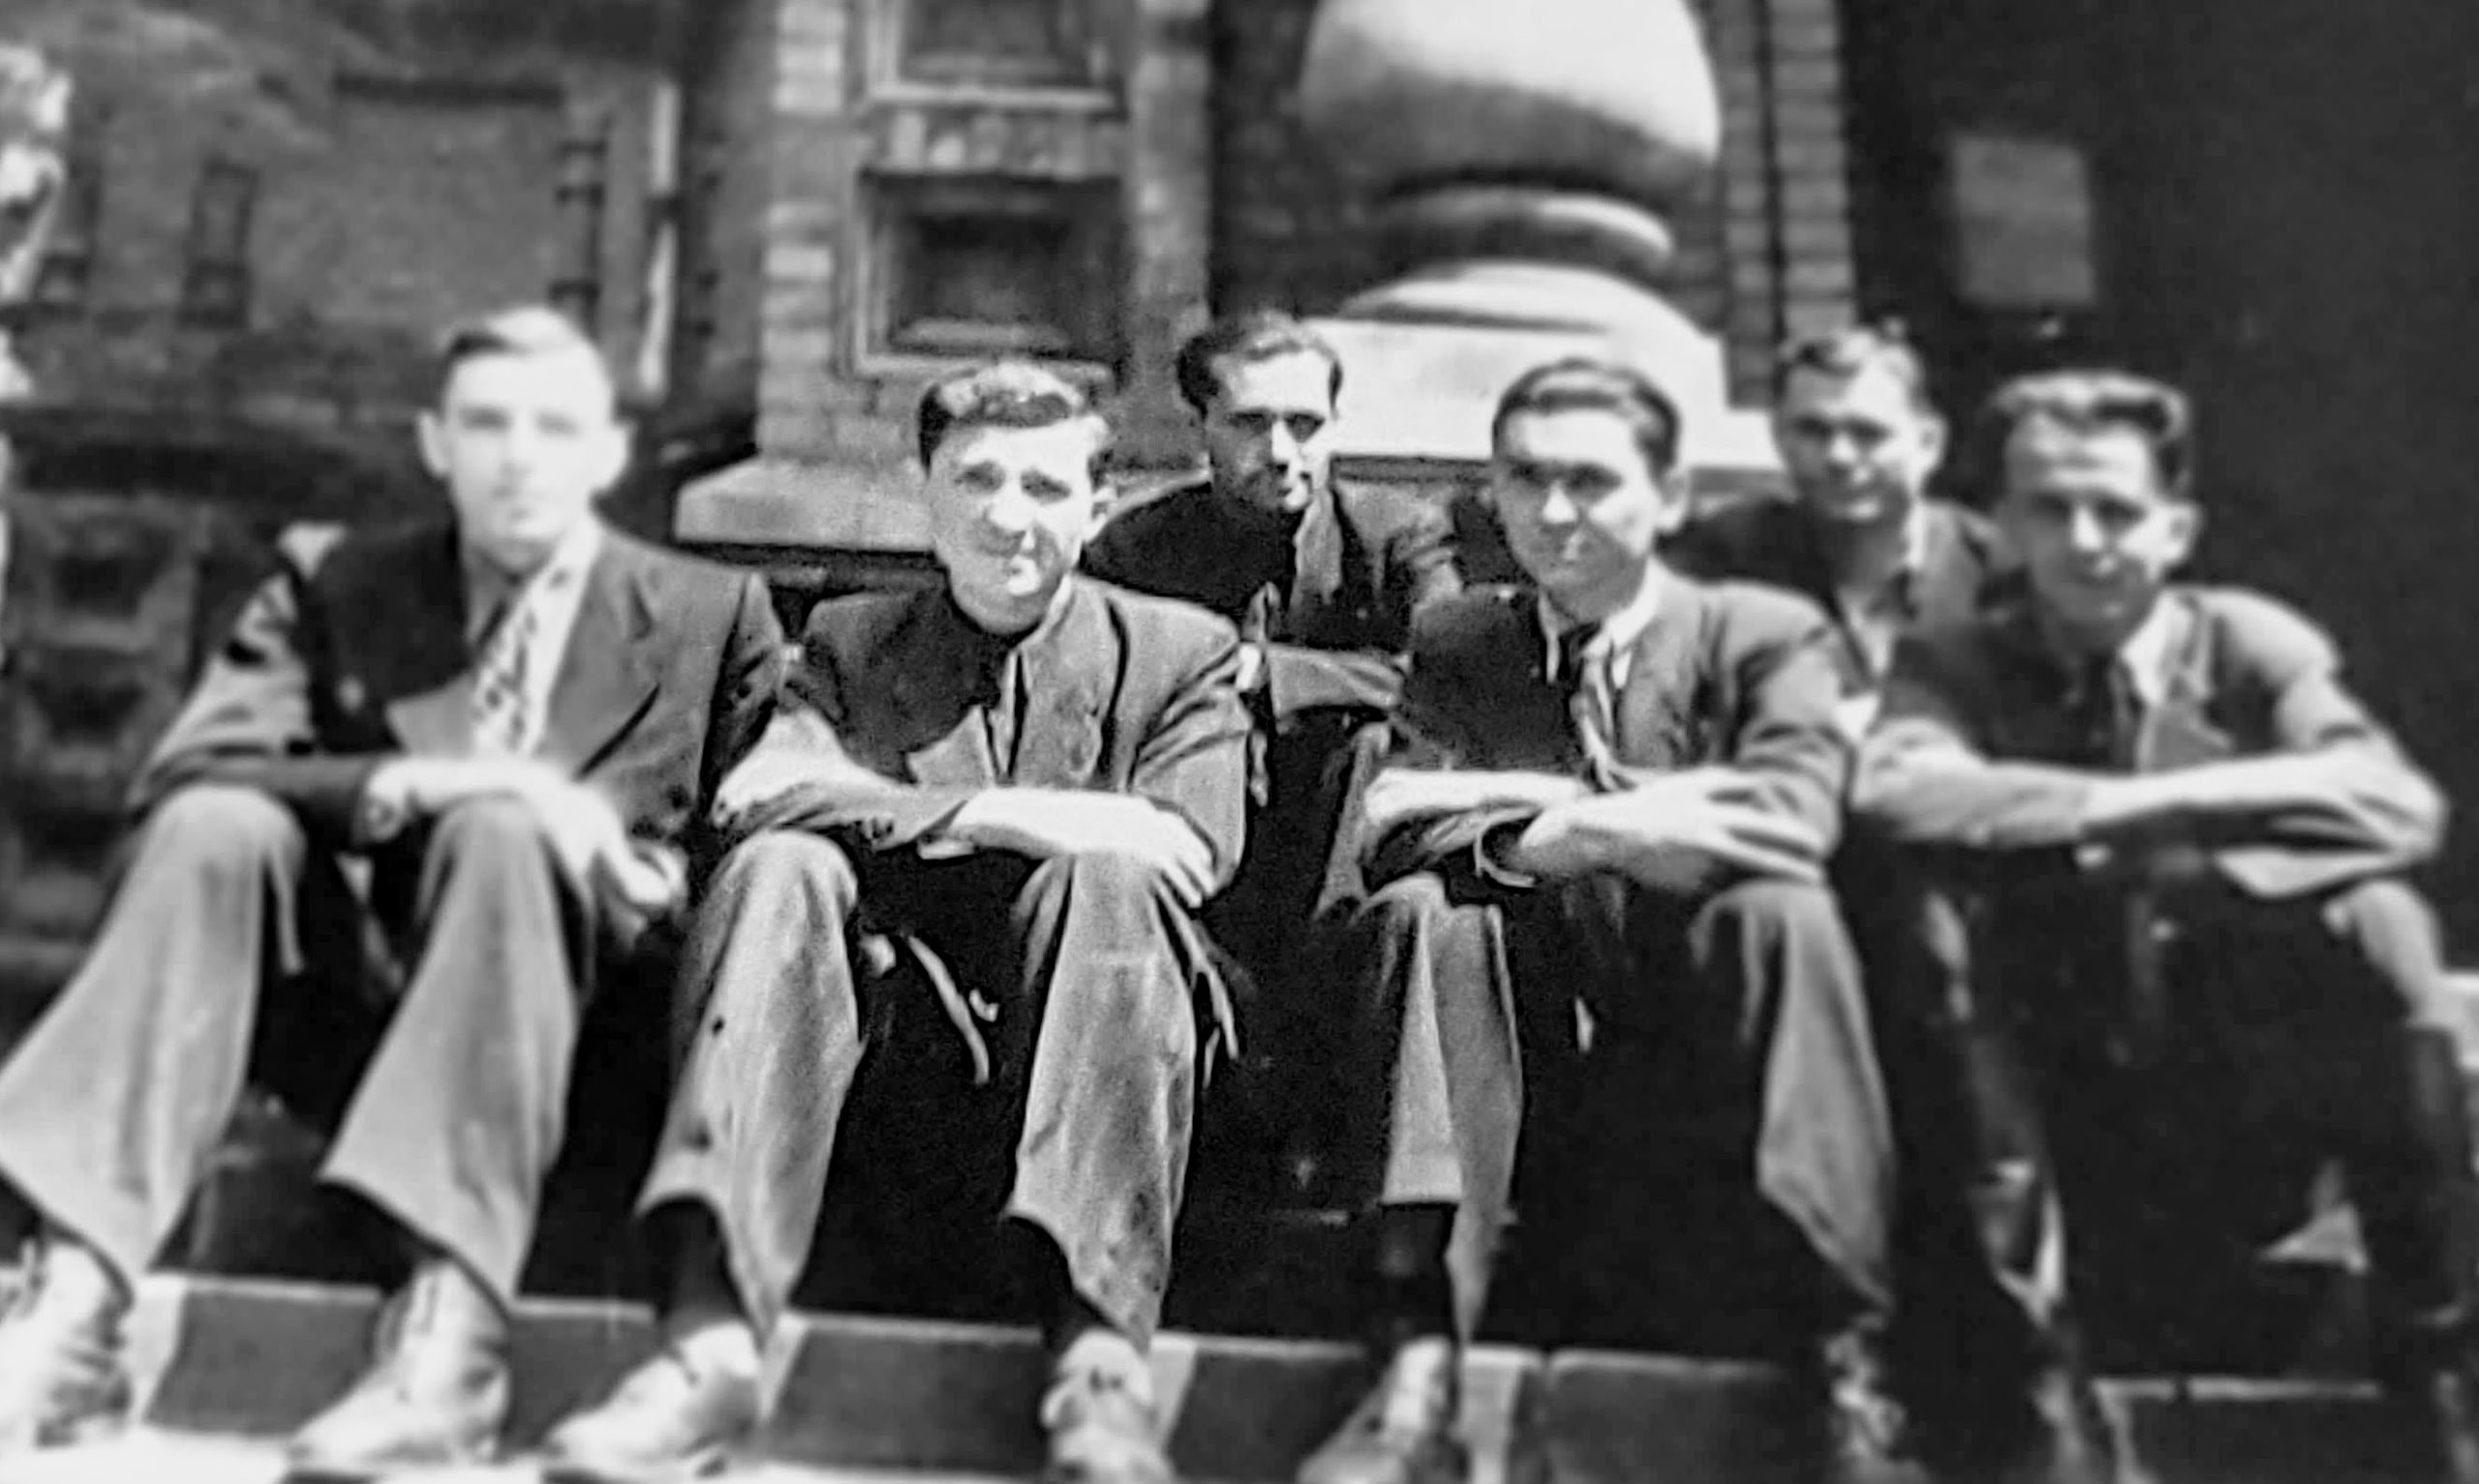 Friends from the seminary; some arrived in Minneapolis after the war and stayed lifelong friends.